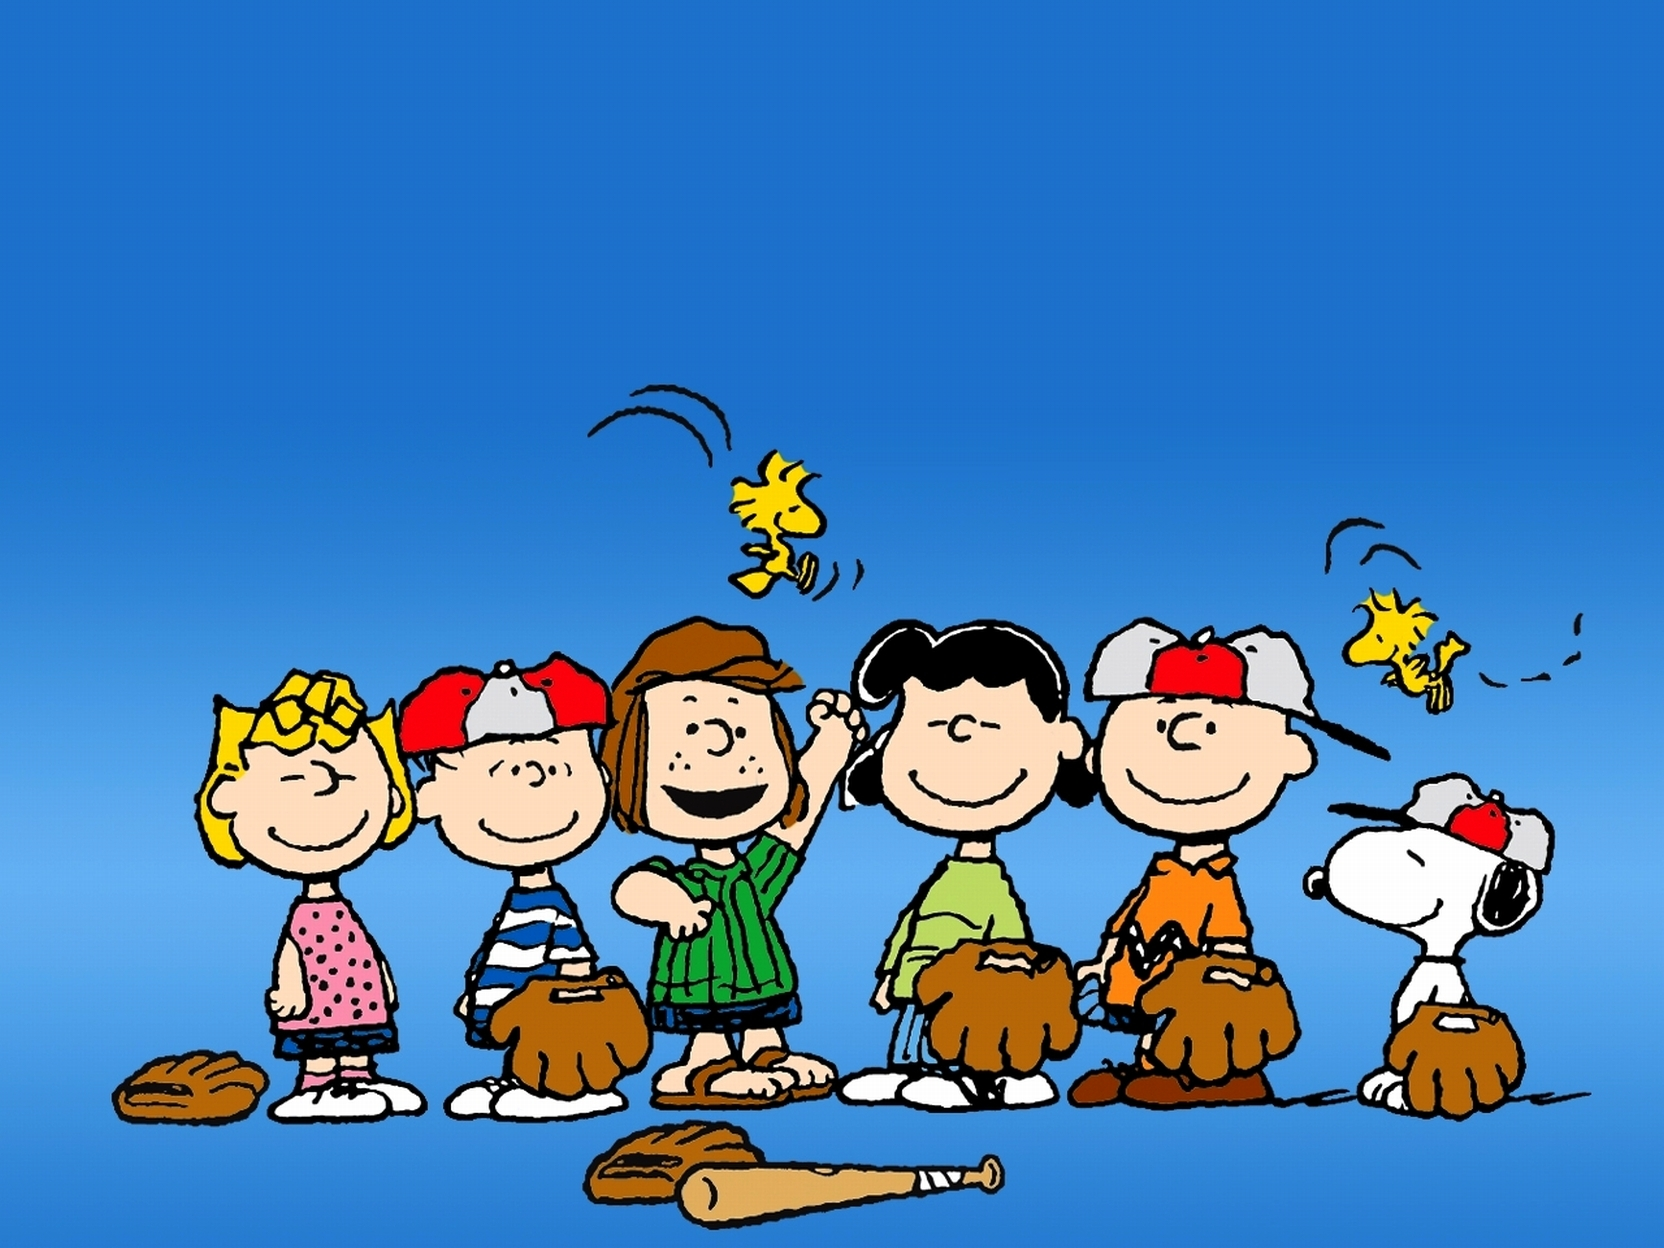 free charlie brown wallpaper 14842 1664x1248 px ~ hdwallsource